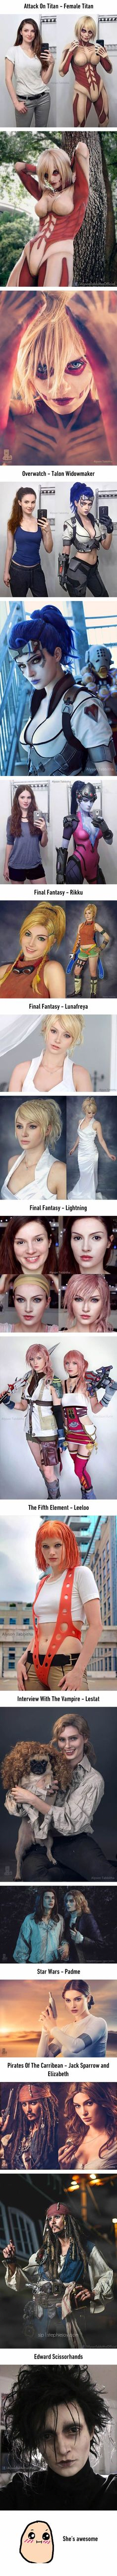 This girl's cosplays are spot-on